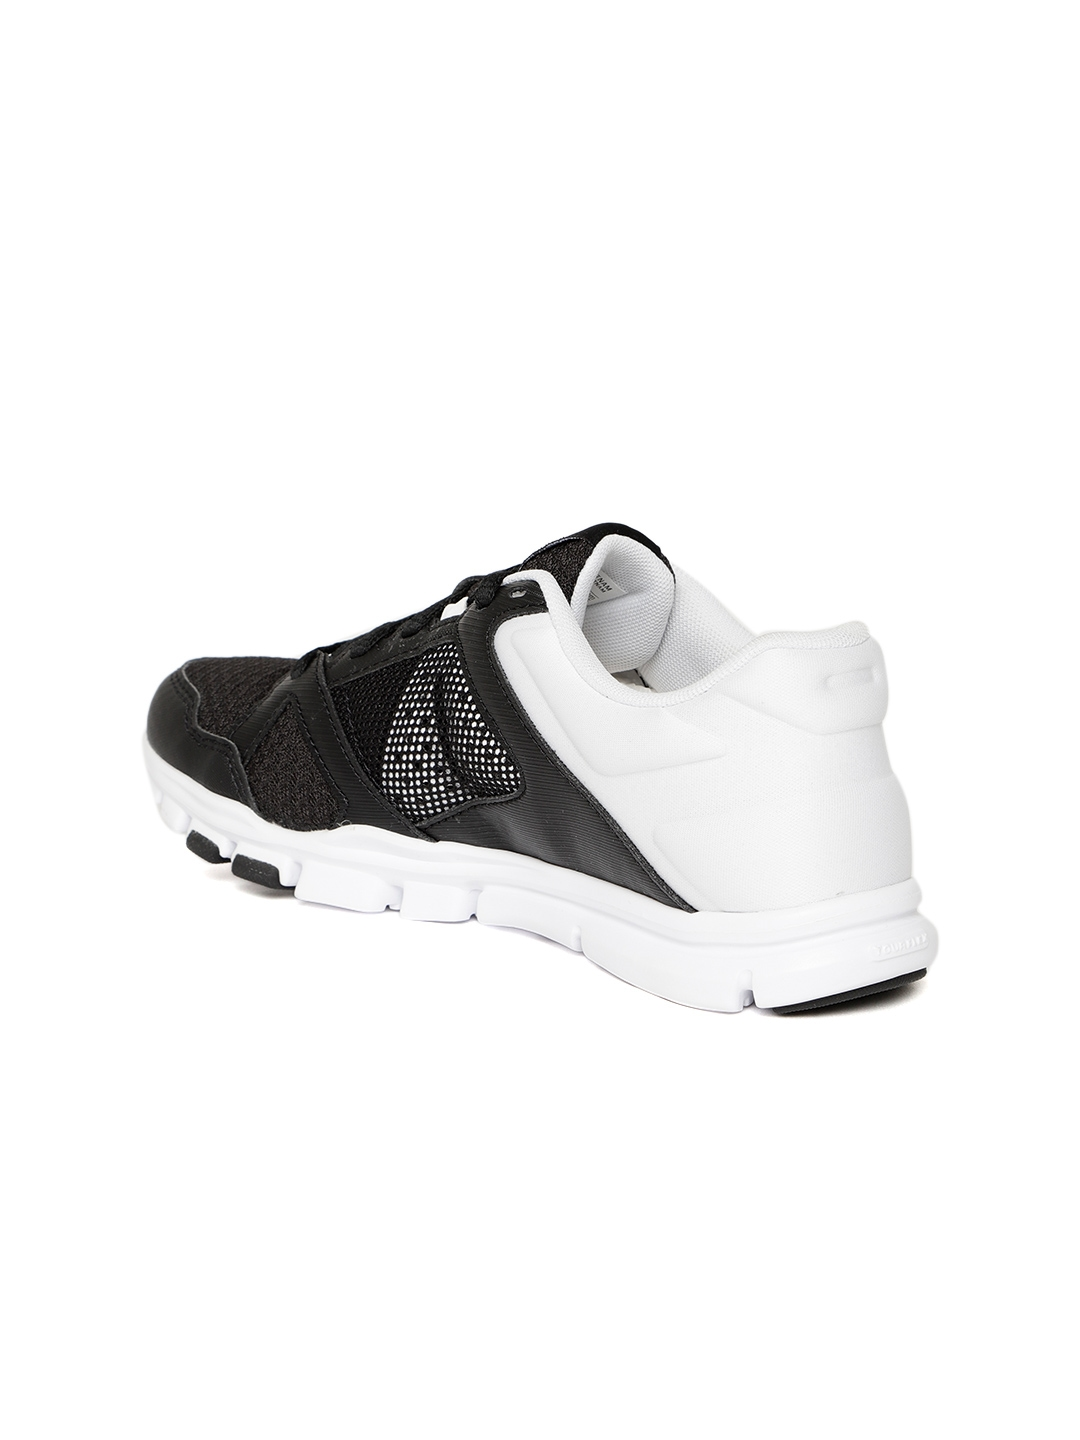 Reebok Women Black White YOURFLEX TRAINETTE 10 MT Colourblocked Training  Shoes really comfortable 3a133 aed09 ... 19b3cd7a7